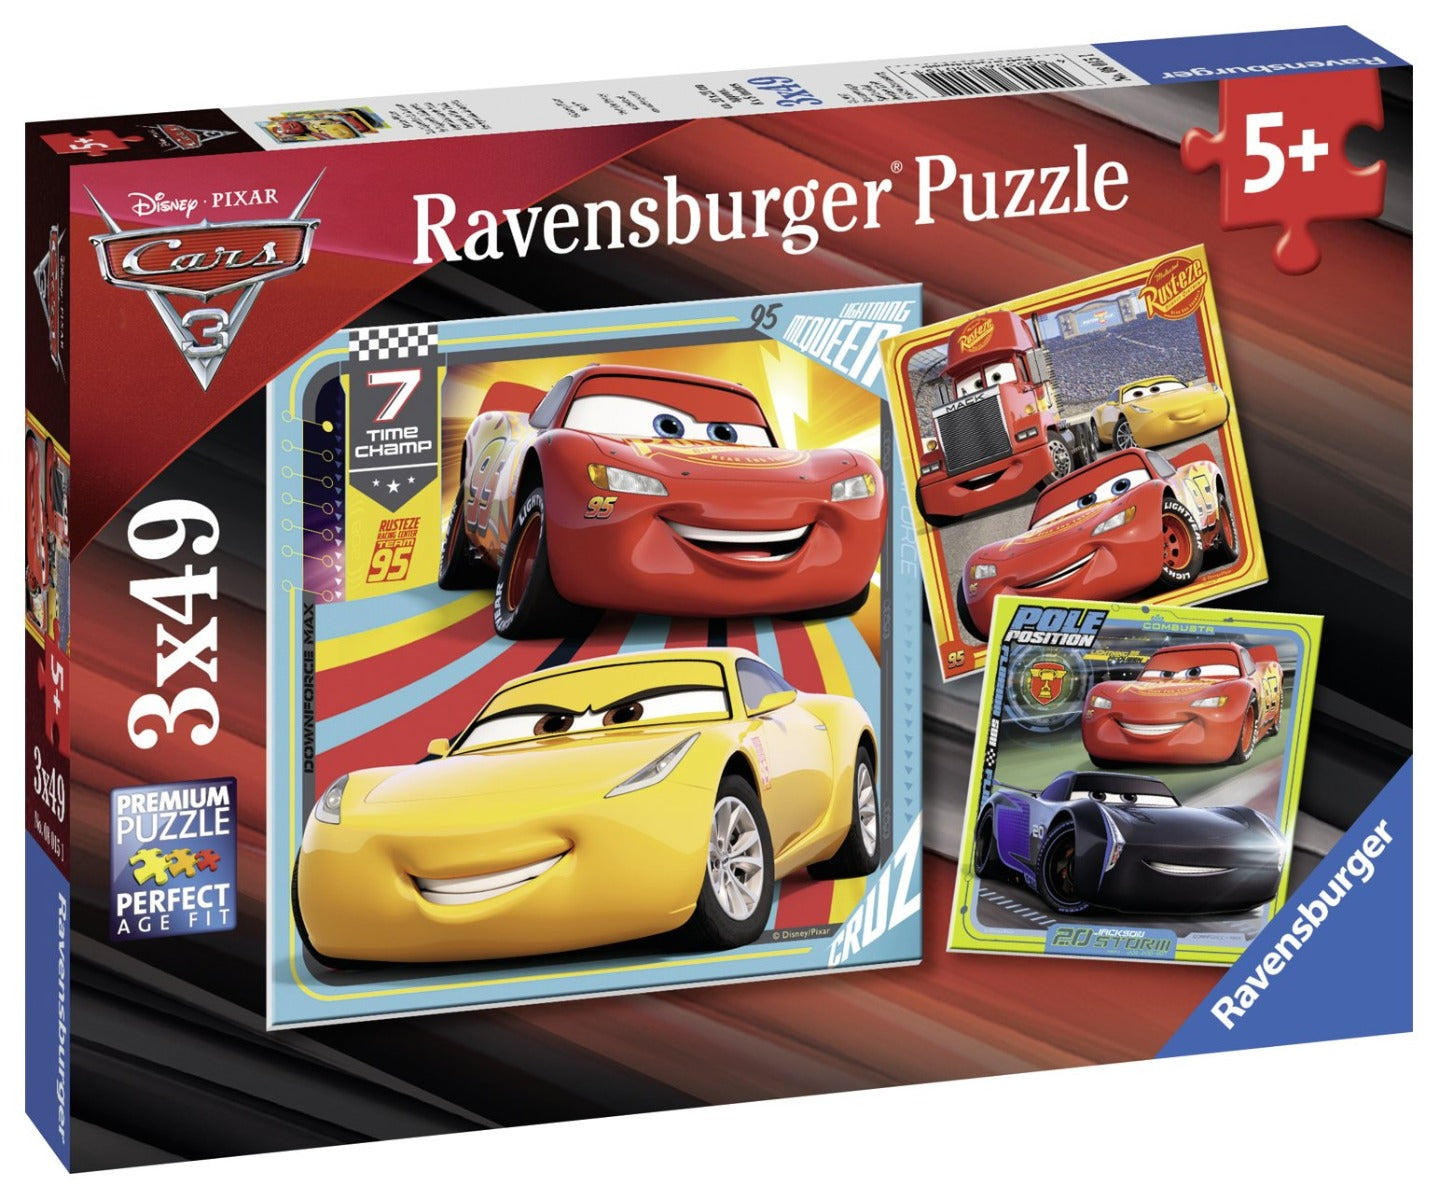 Ravensburger Legends of the Track set of 3 puzzles